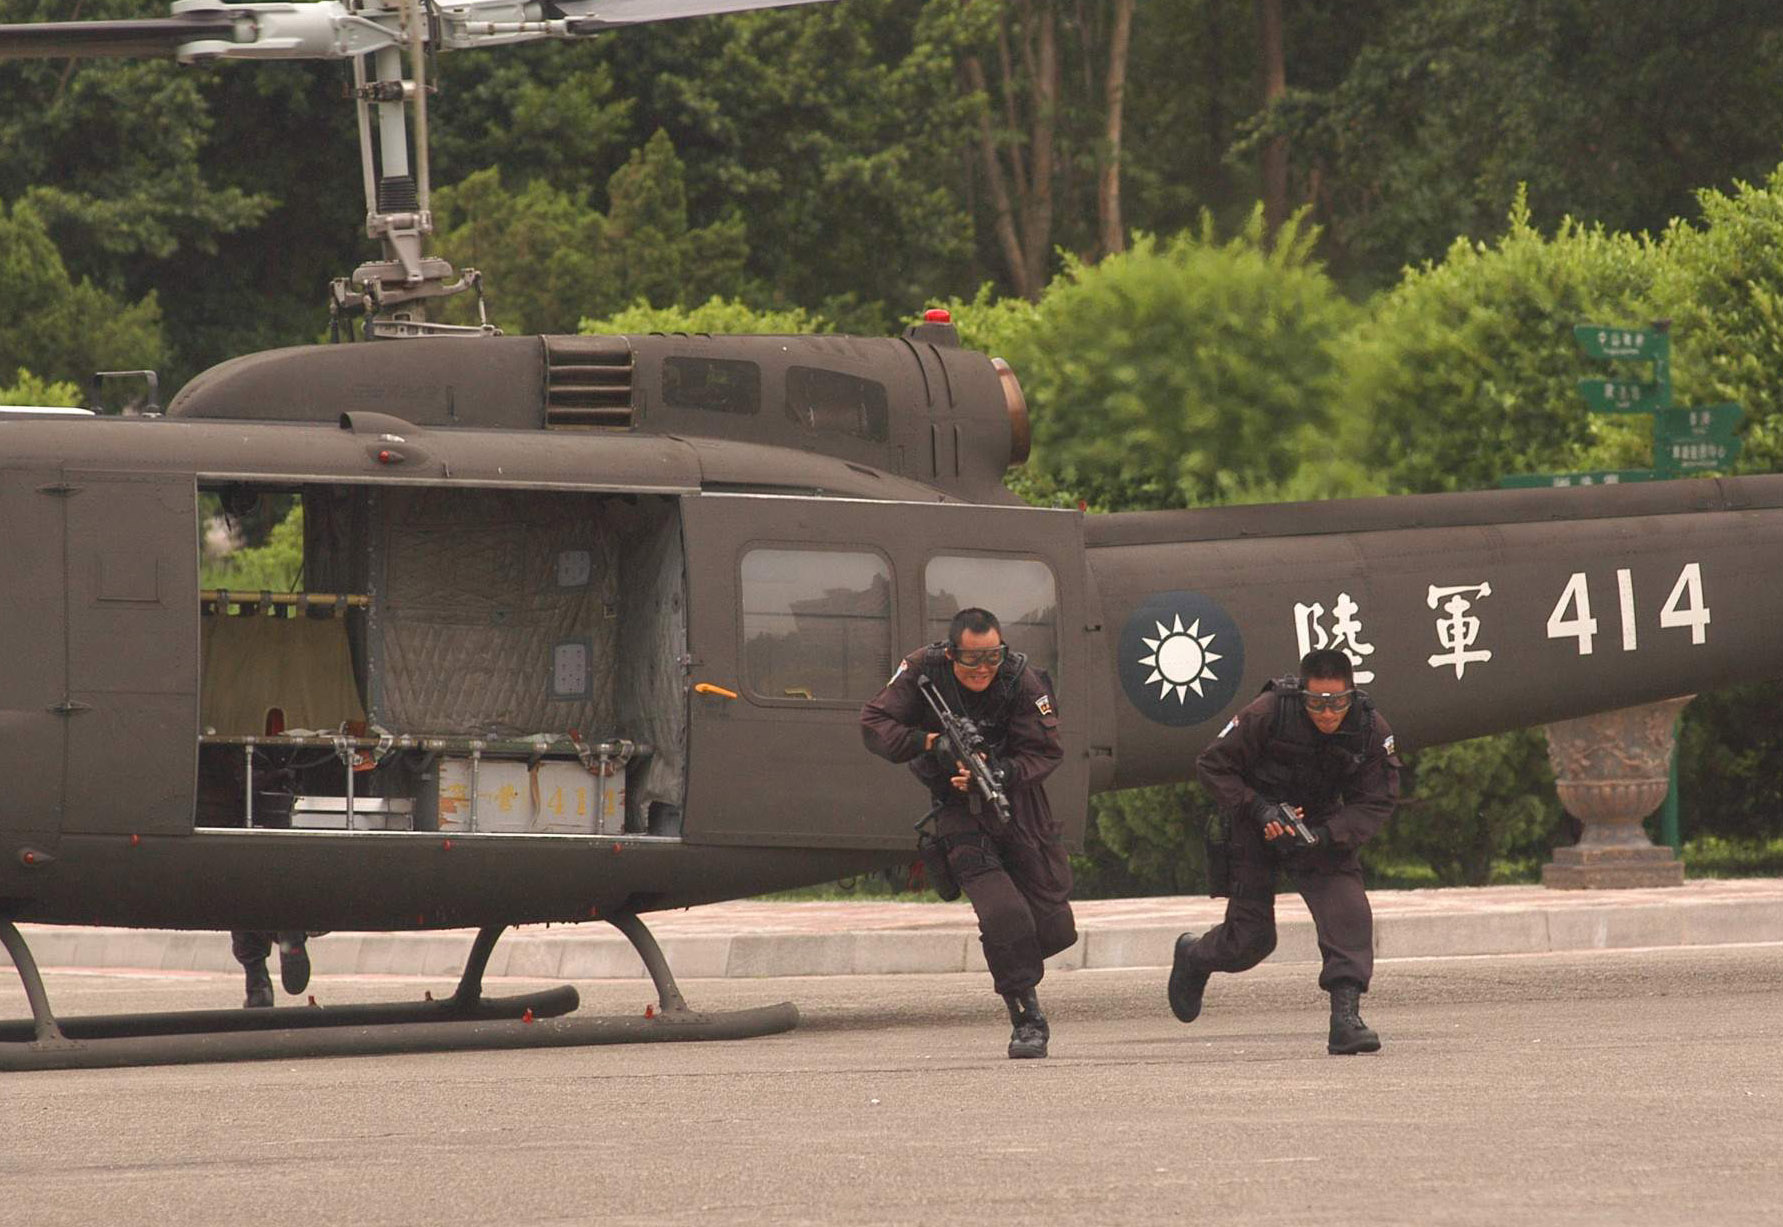 Two men in military uniform getting off an helicopter. They are both running and carrying a weapon.